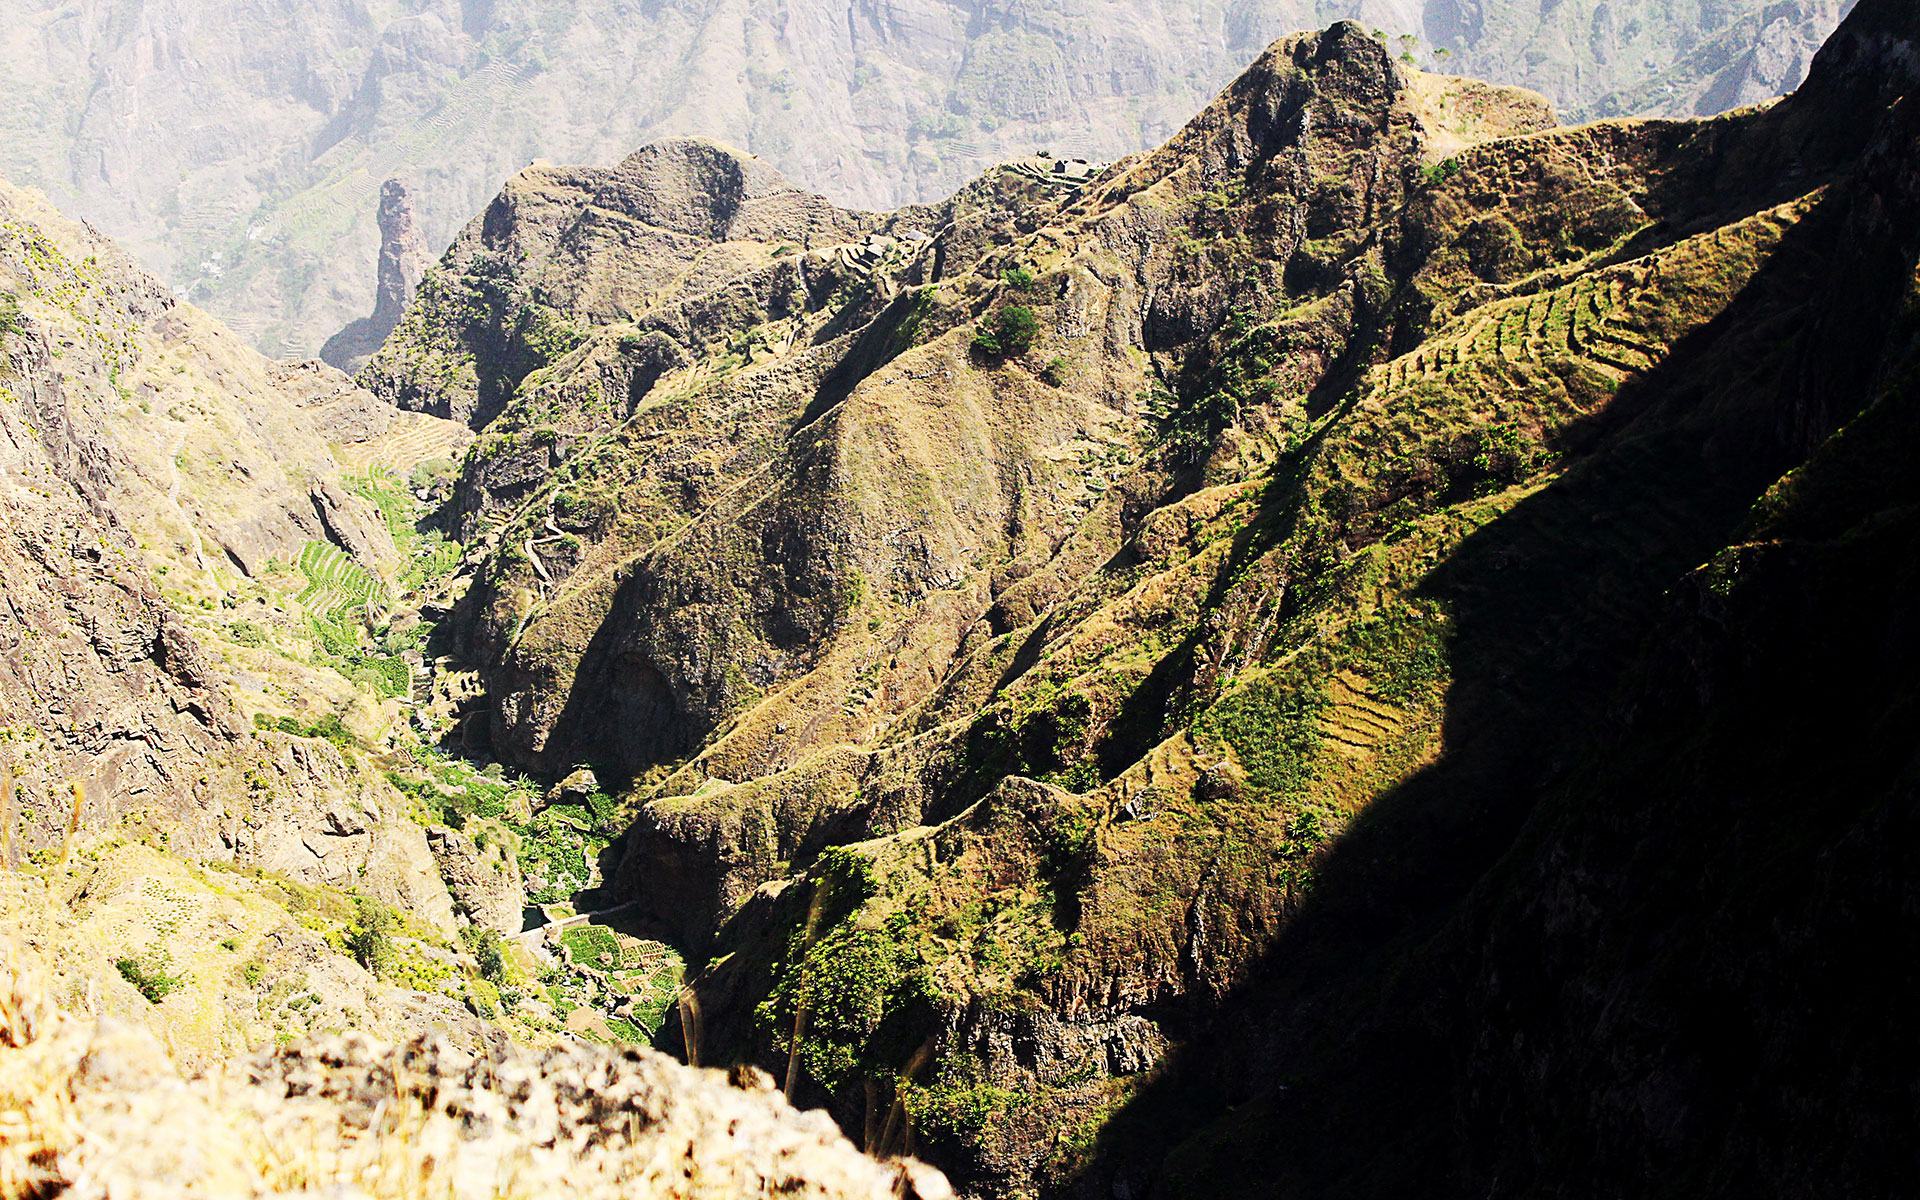 MOUNTAINS OF SANTO ANTAO